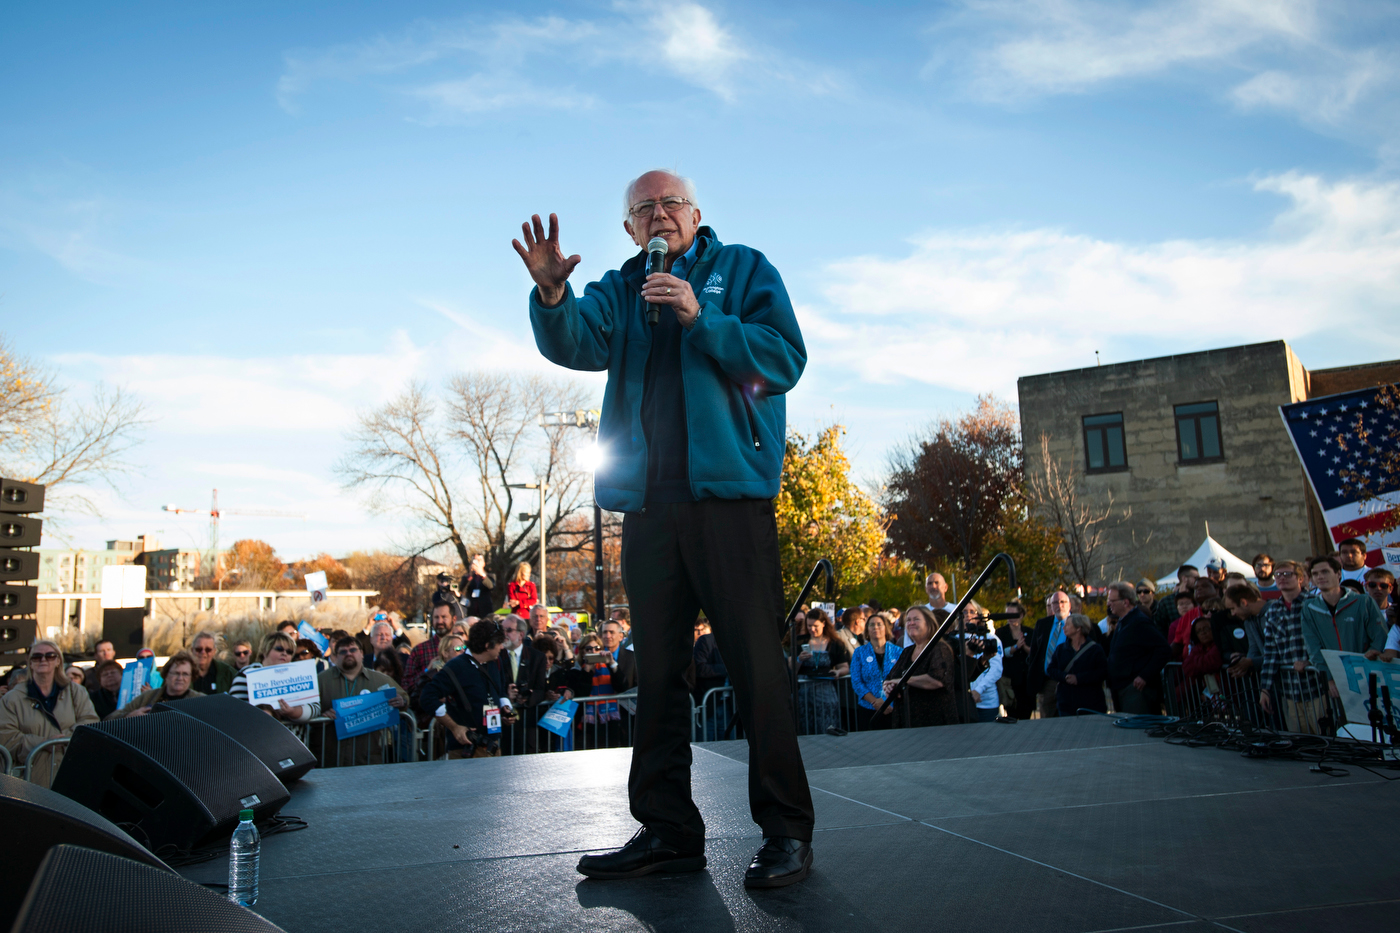 Democratic presidential candidate Sen. Bernie Sanders speaks at a campaign rally ahead of a march across the Iowa Women of Achievement Bridge in downtown Des Moines, IA.